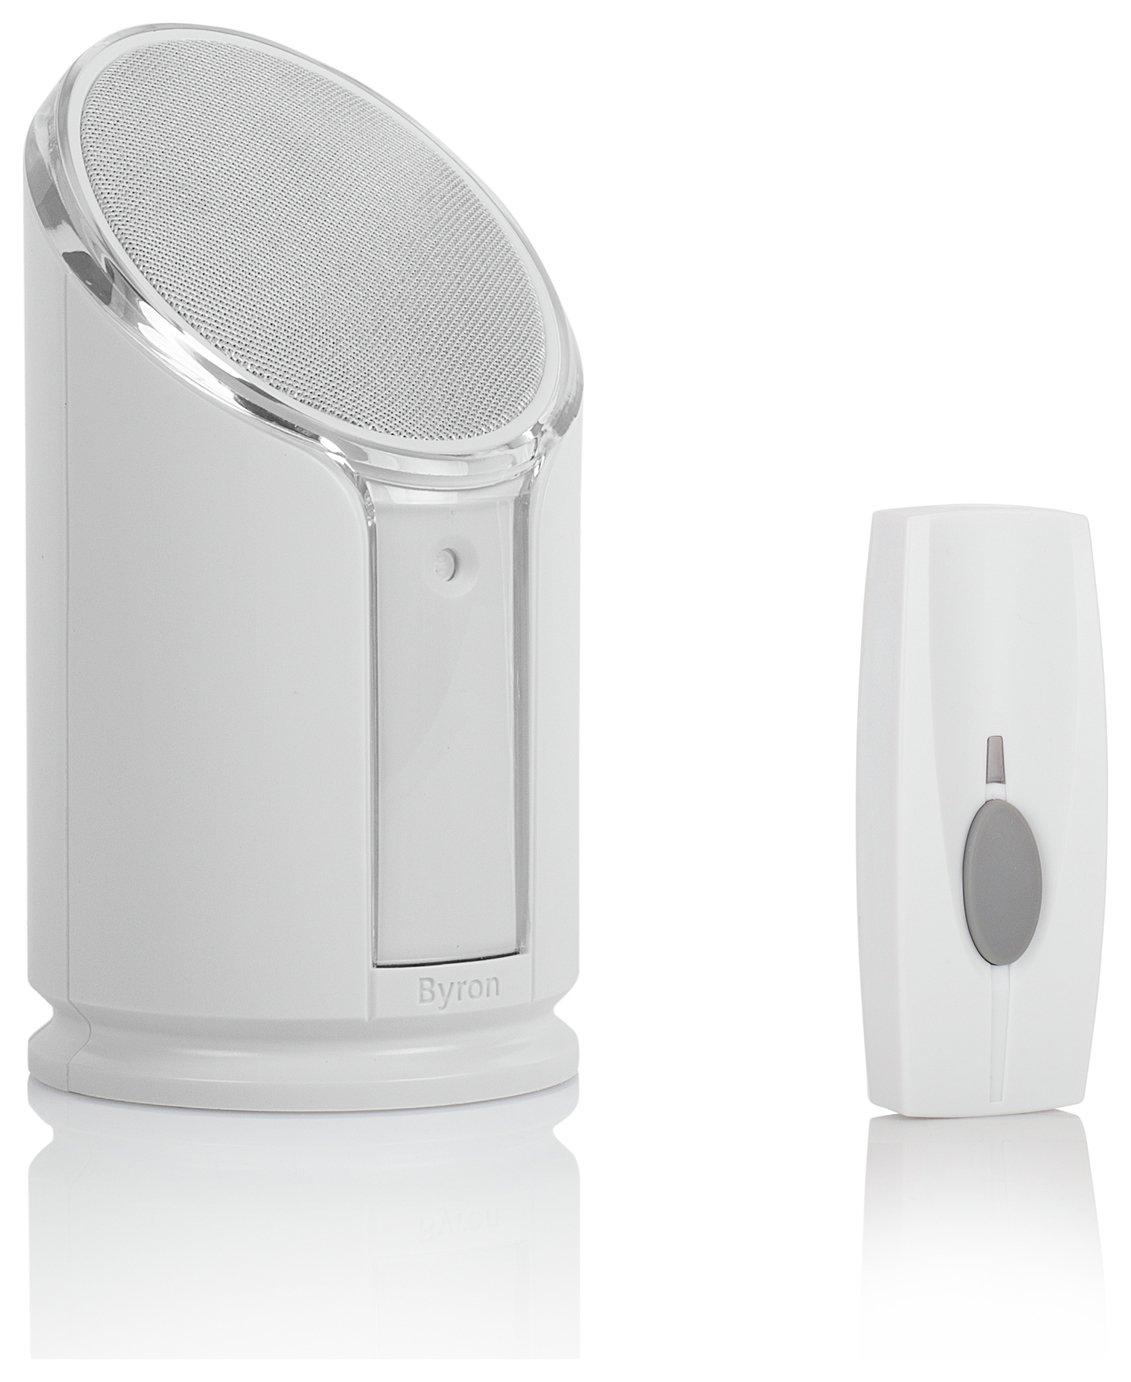 Image of Byron BY301 100m Wireless Doorbell Portable Loud Flash Chime